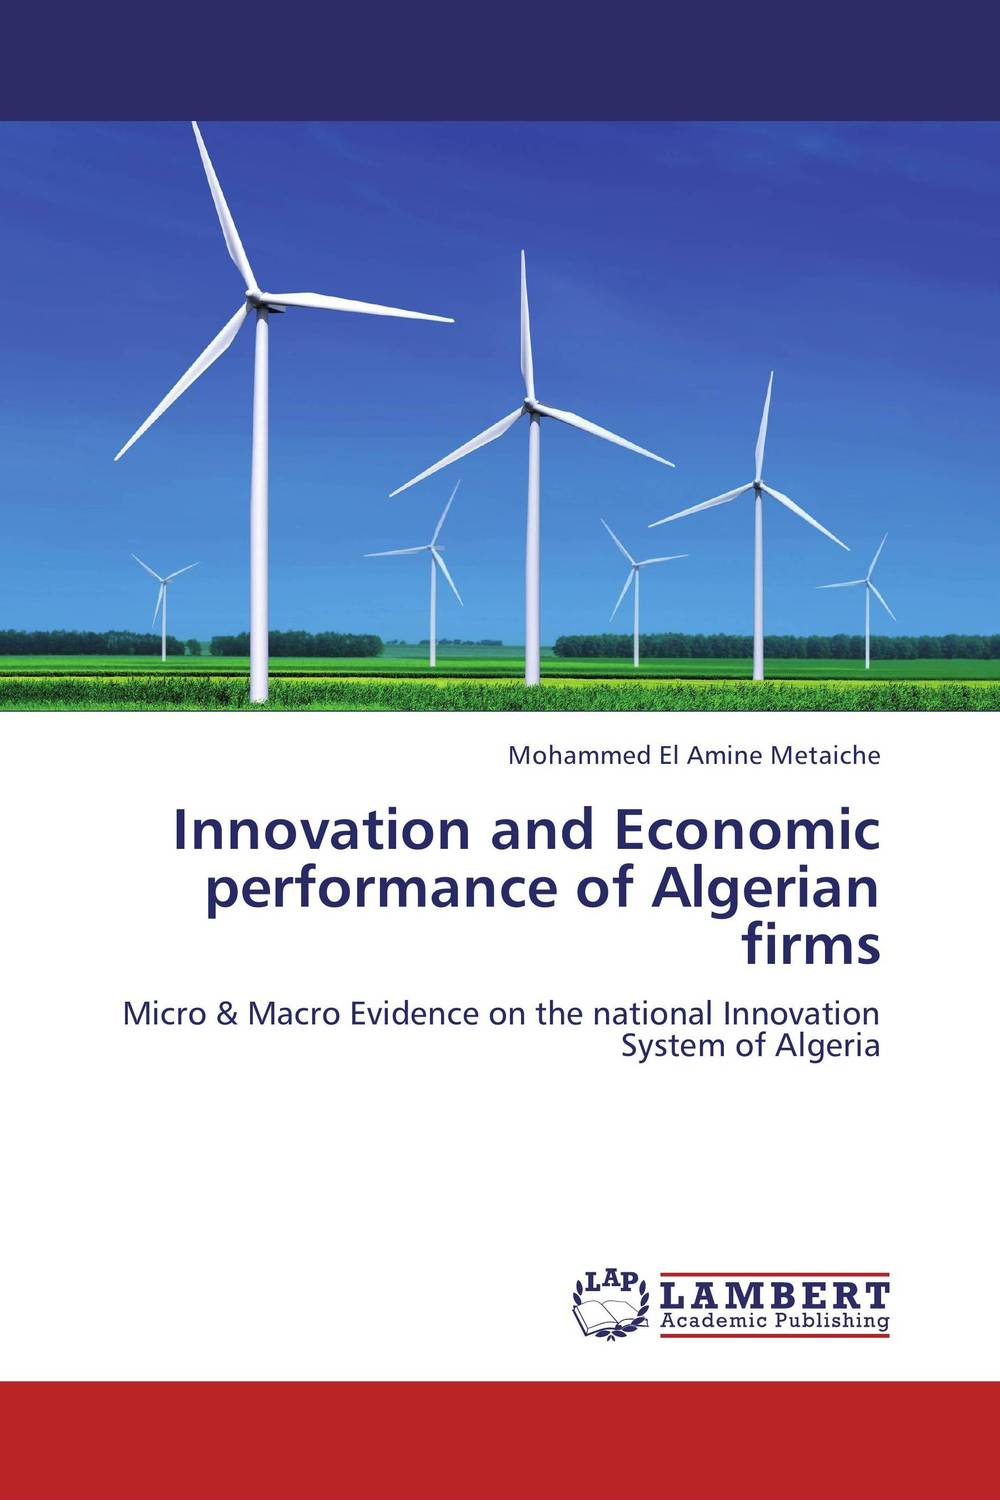 Innovation and Economic performance of Algerian firms duncan bruce the dream cafe lessons in the art of radical innovation